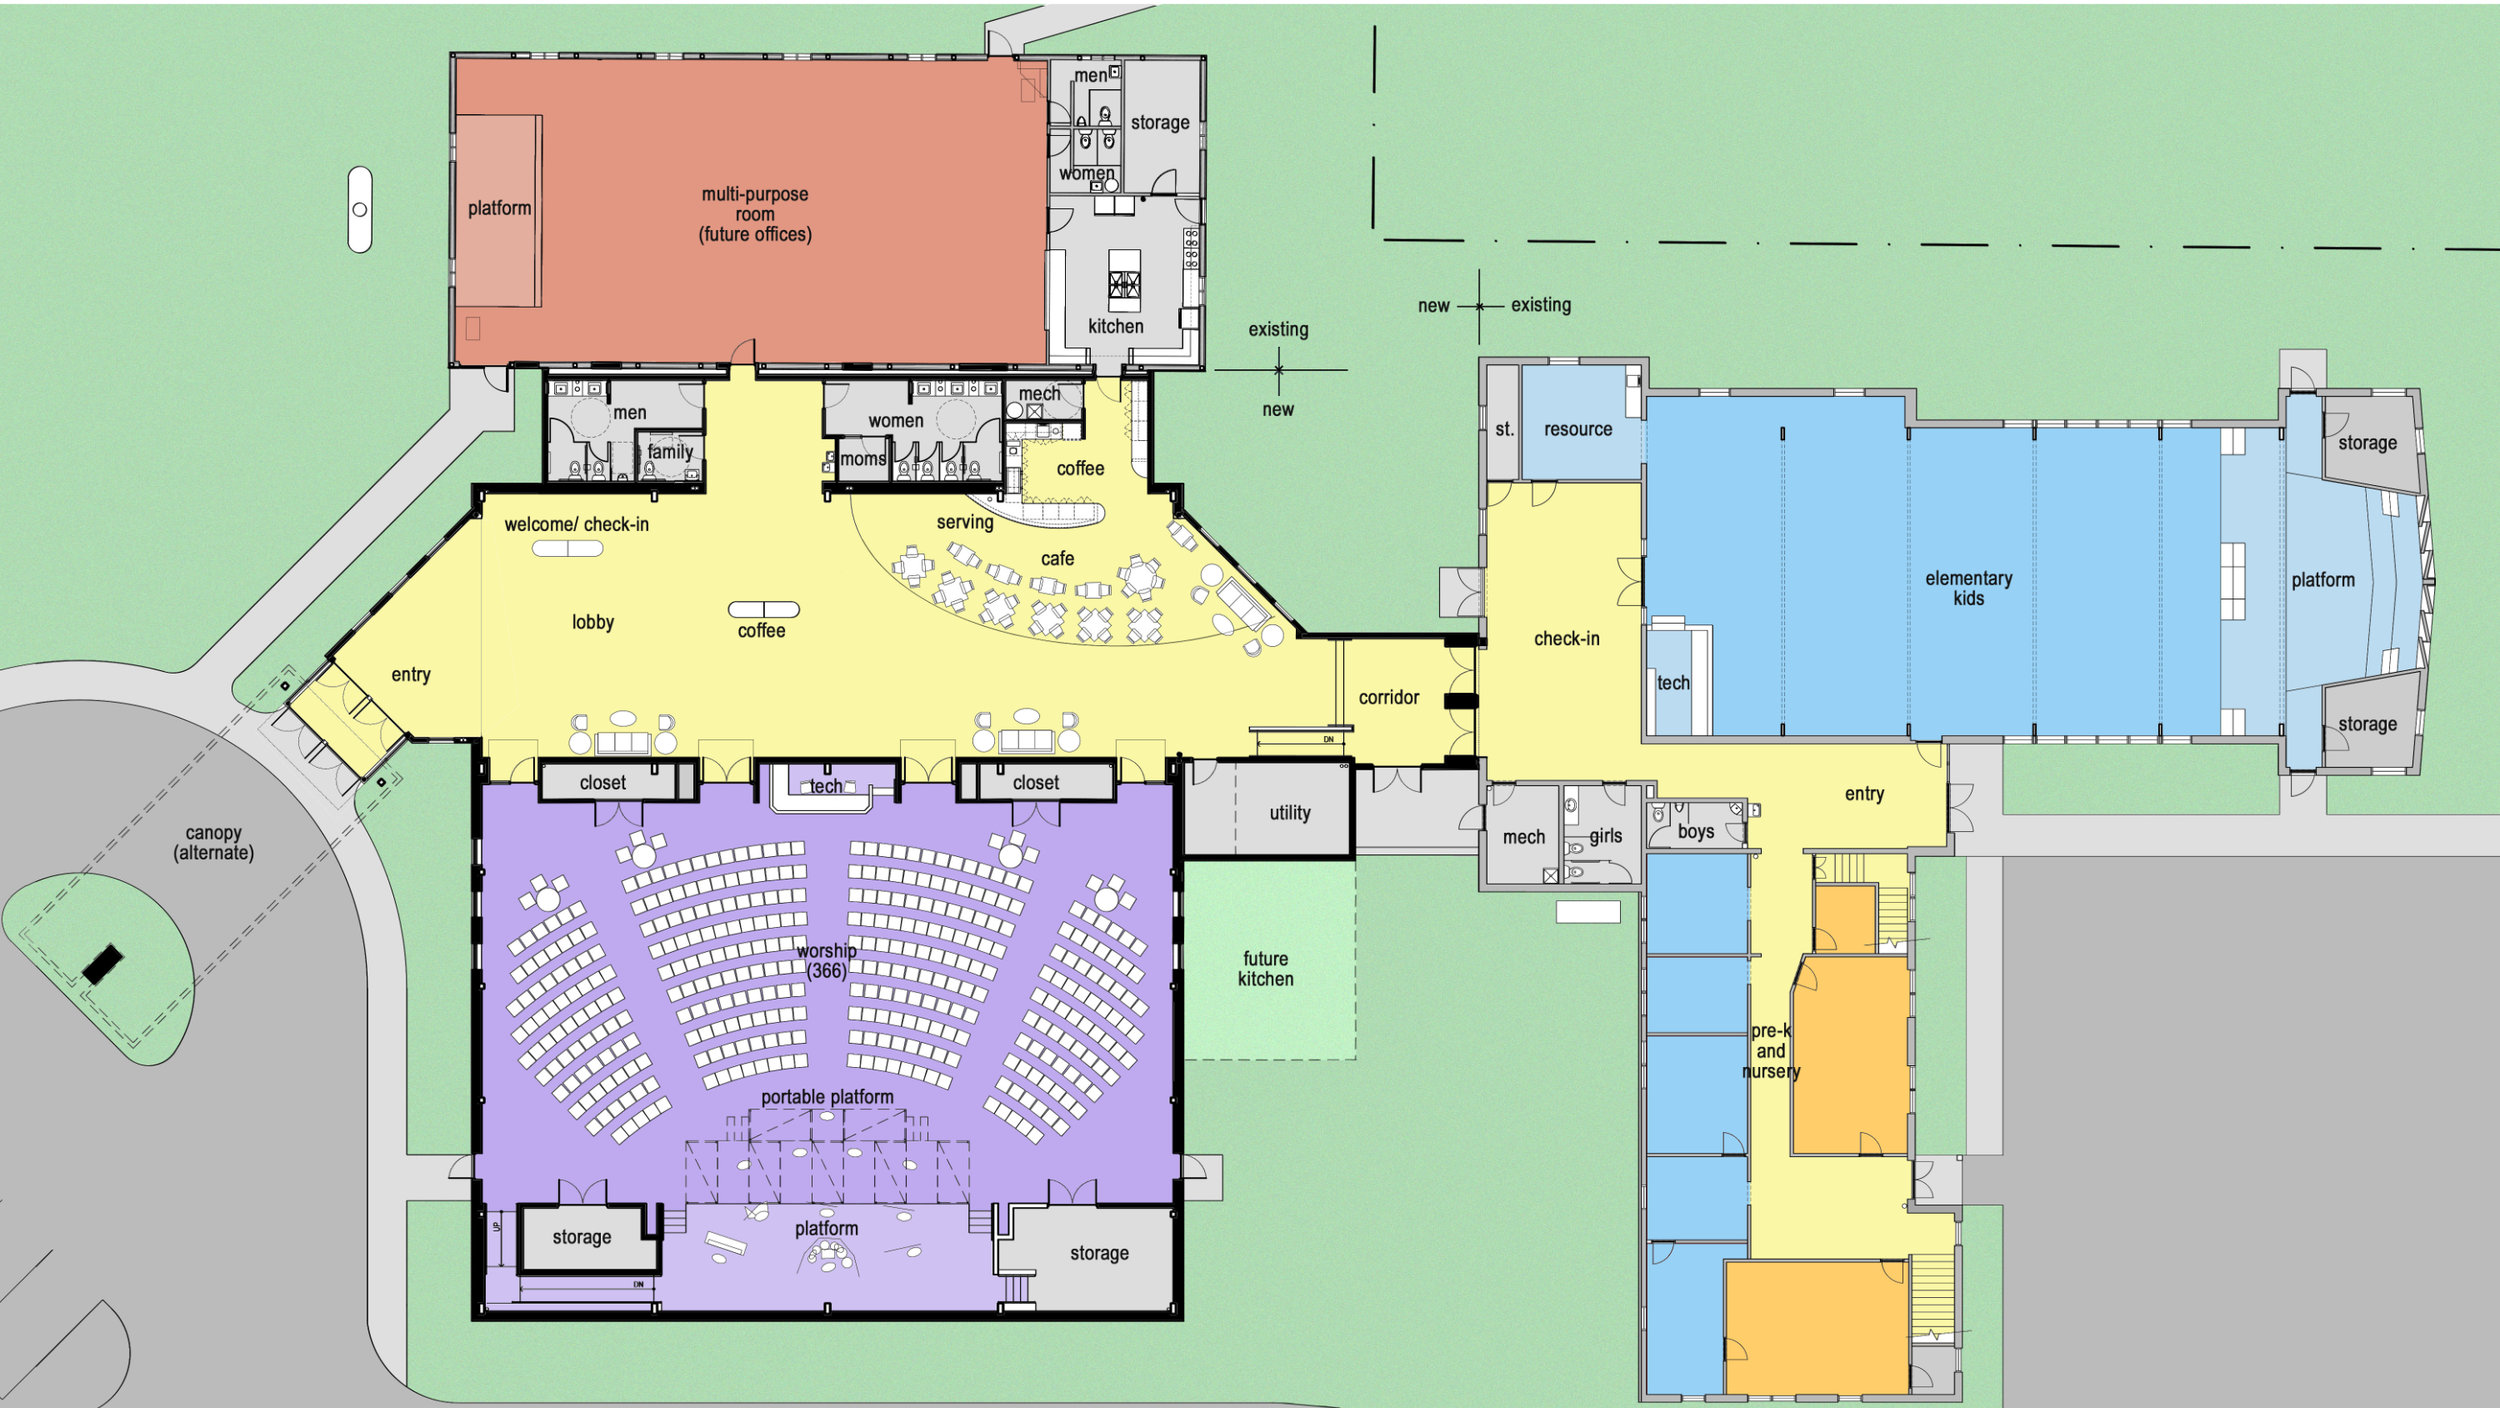 Phase 1 Conceptual floor plan layout